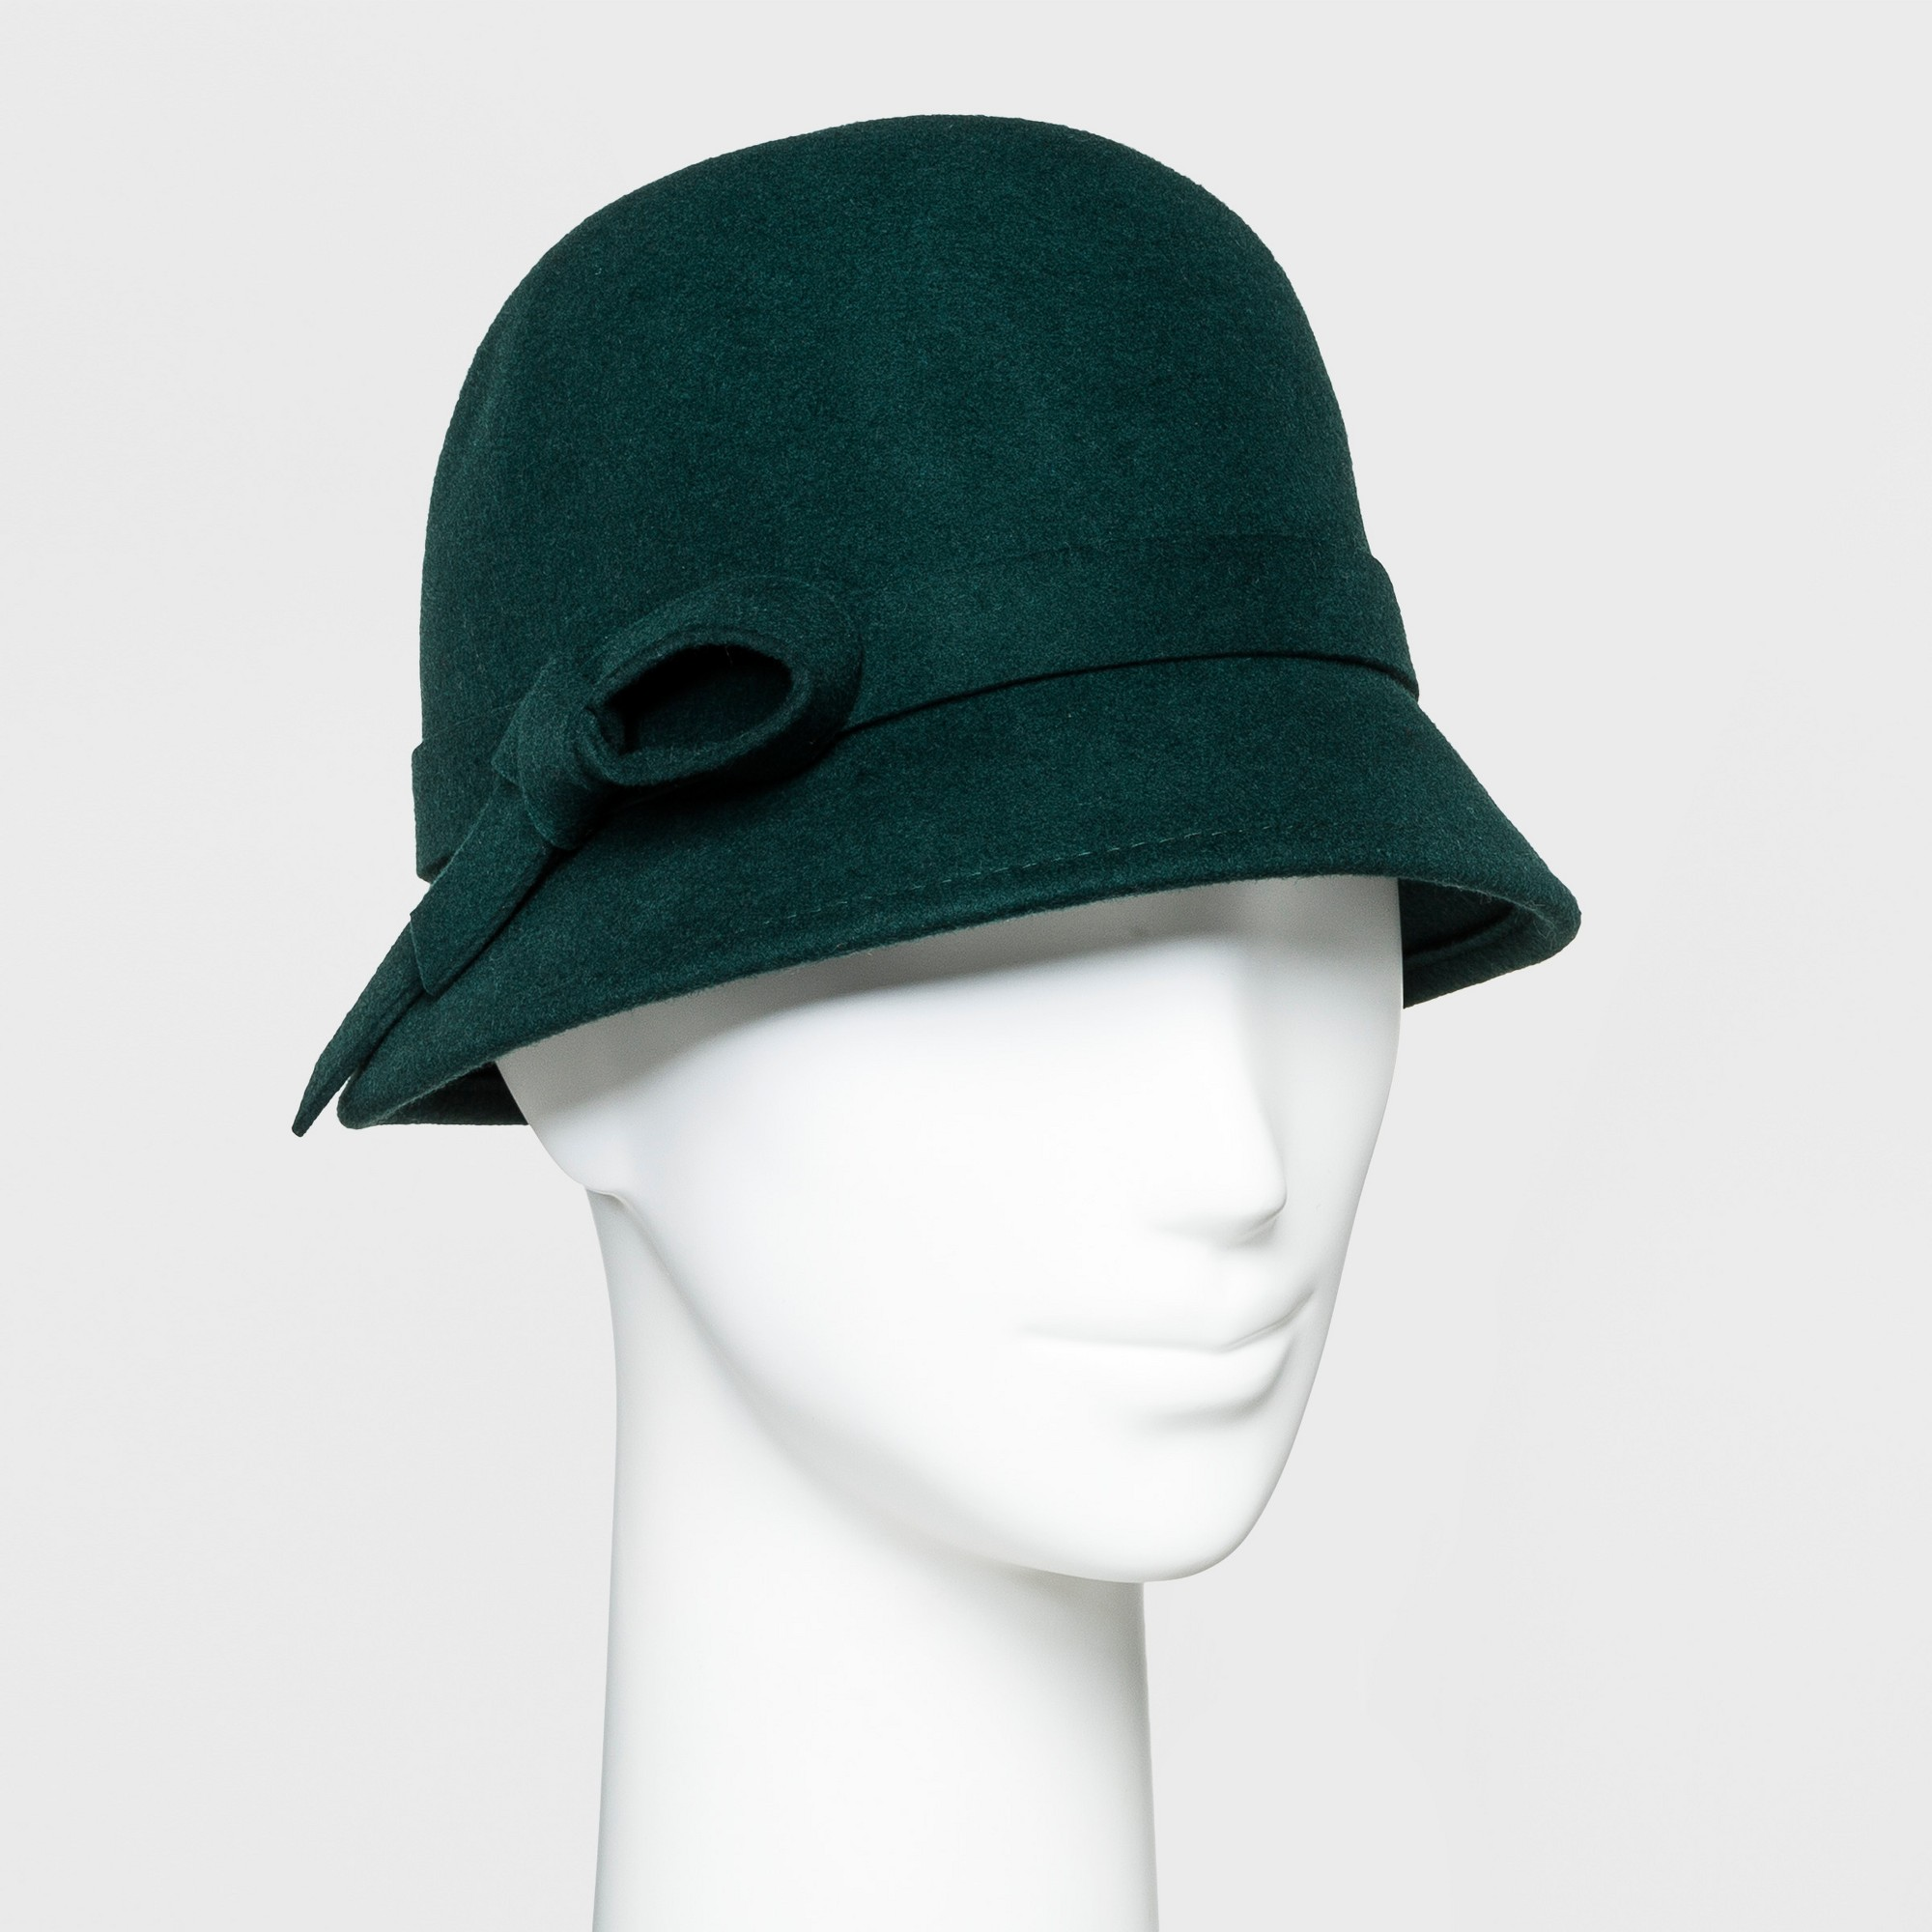 5a69f57a4 Women's Cloche Hat - A New Day Green, Blue | Products in 2019 ...